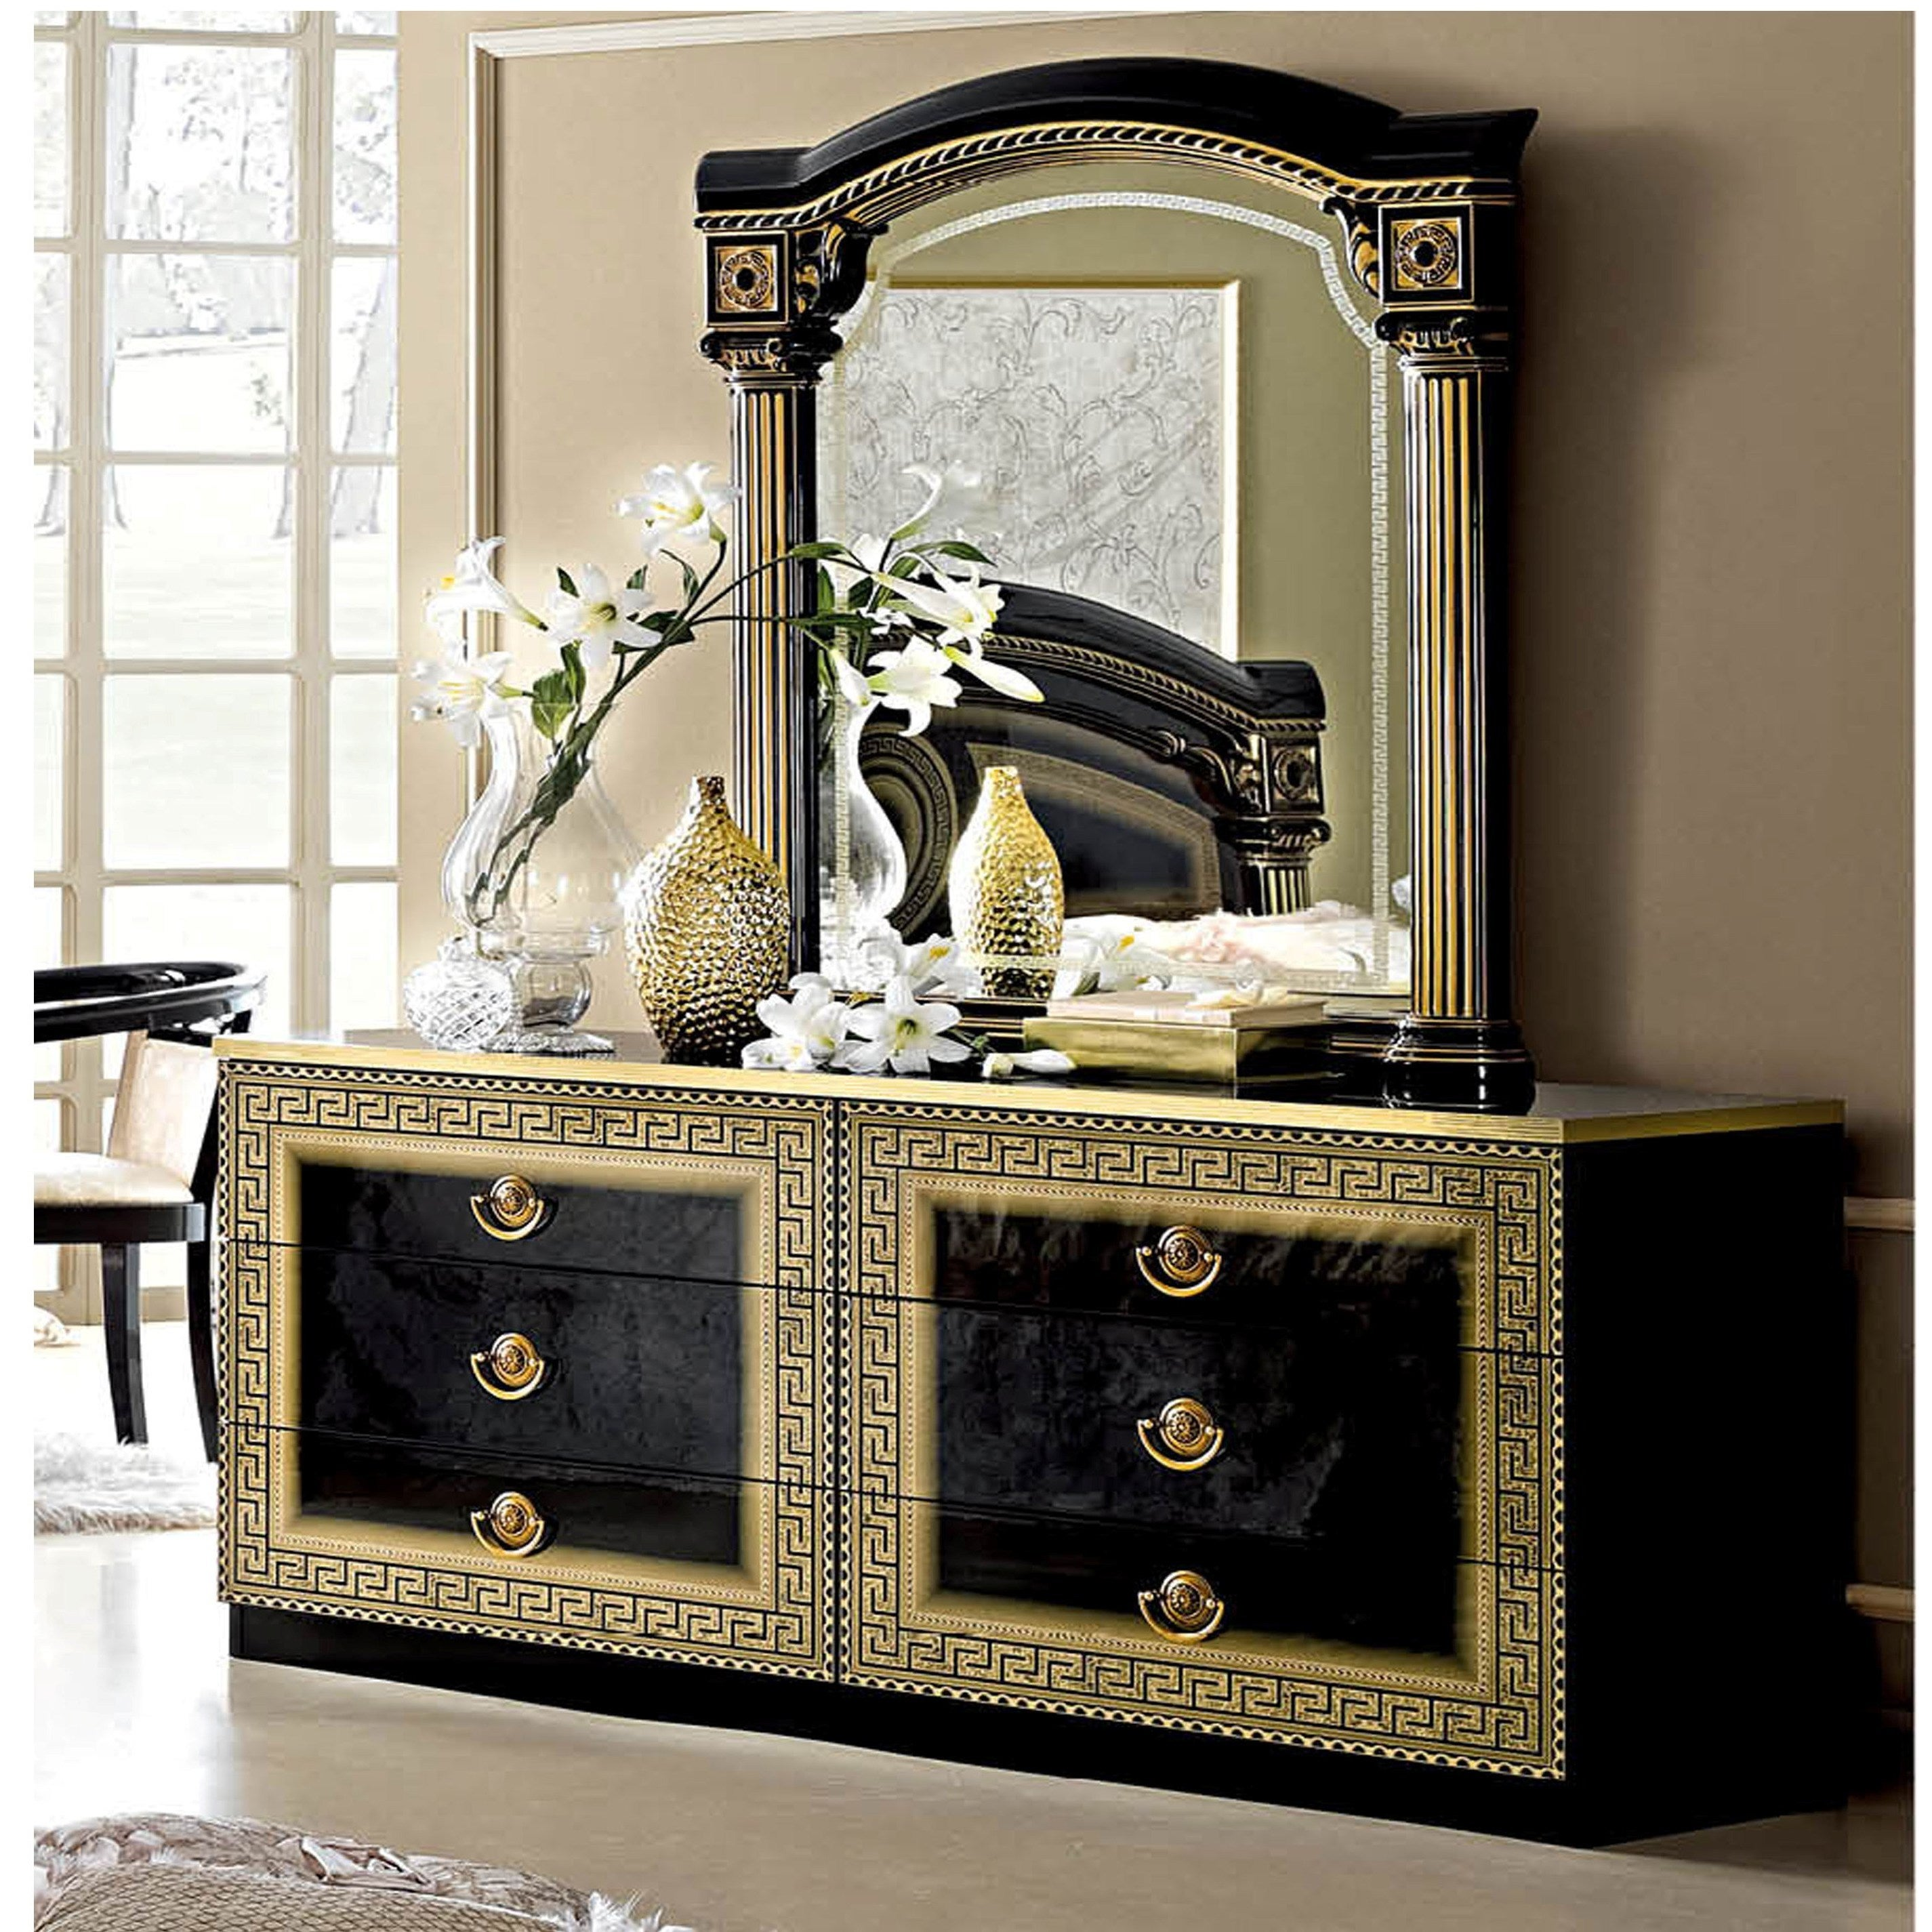 tiffany furniture mirrored dresser black mirror and adams products